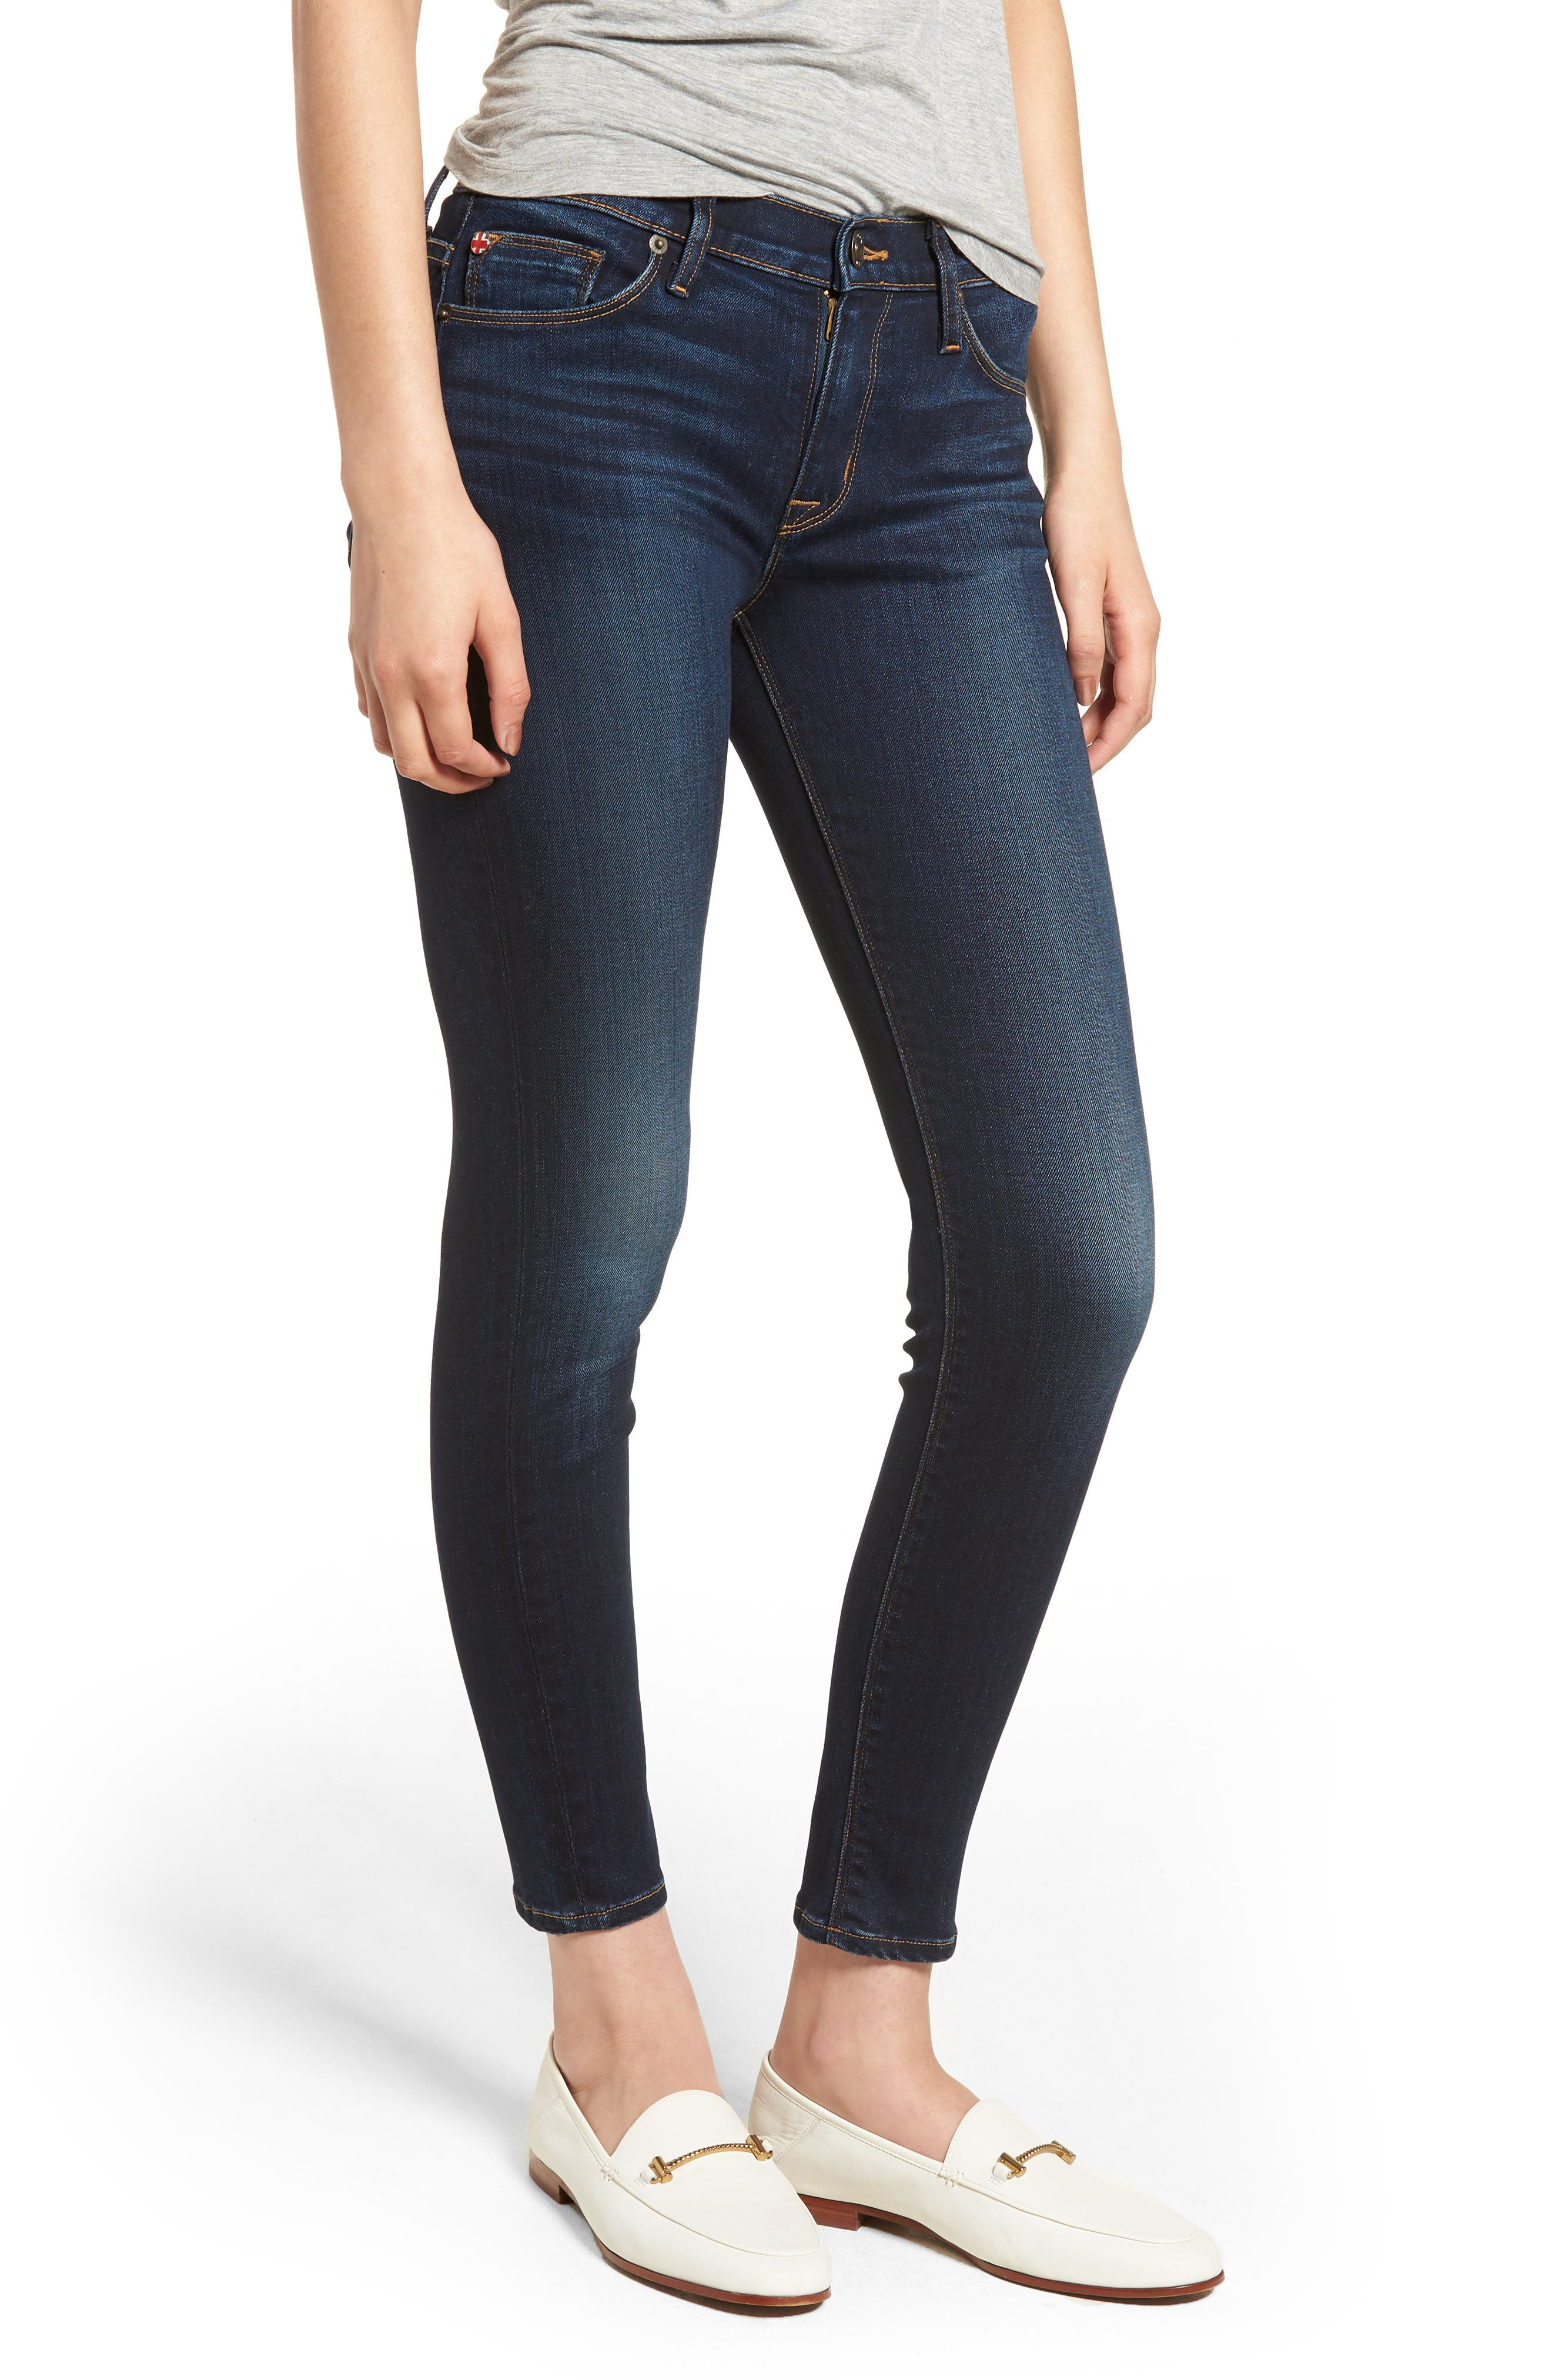 'Nico' Ankle Skinny Jeans,                             Alternate thumbnail 9, color,